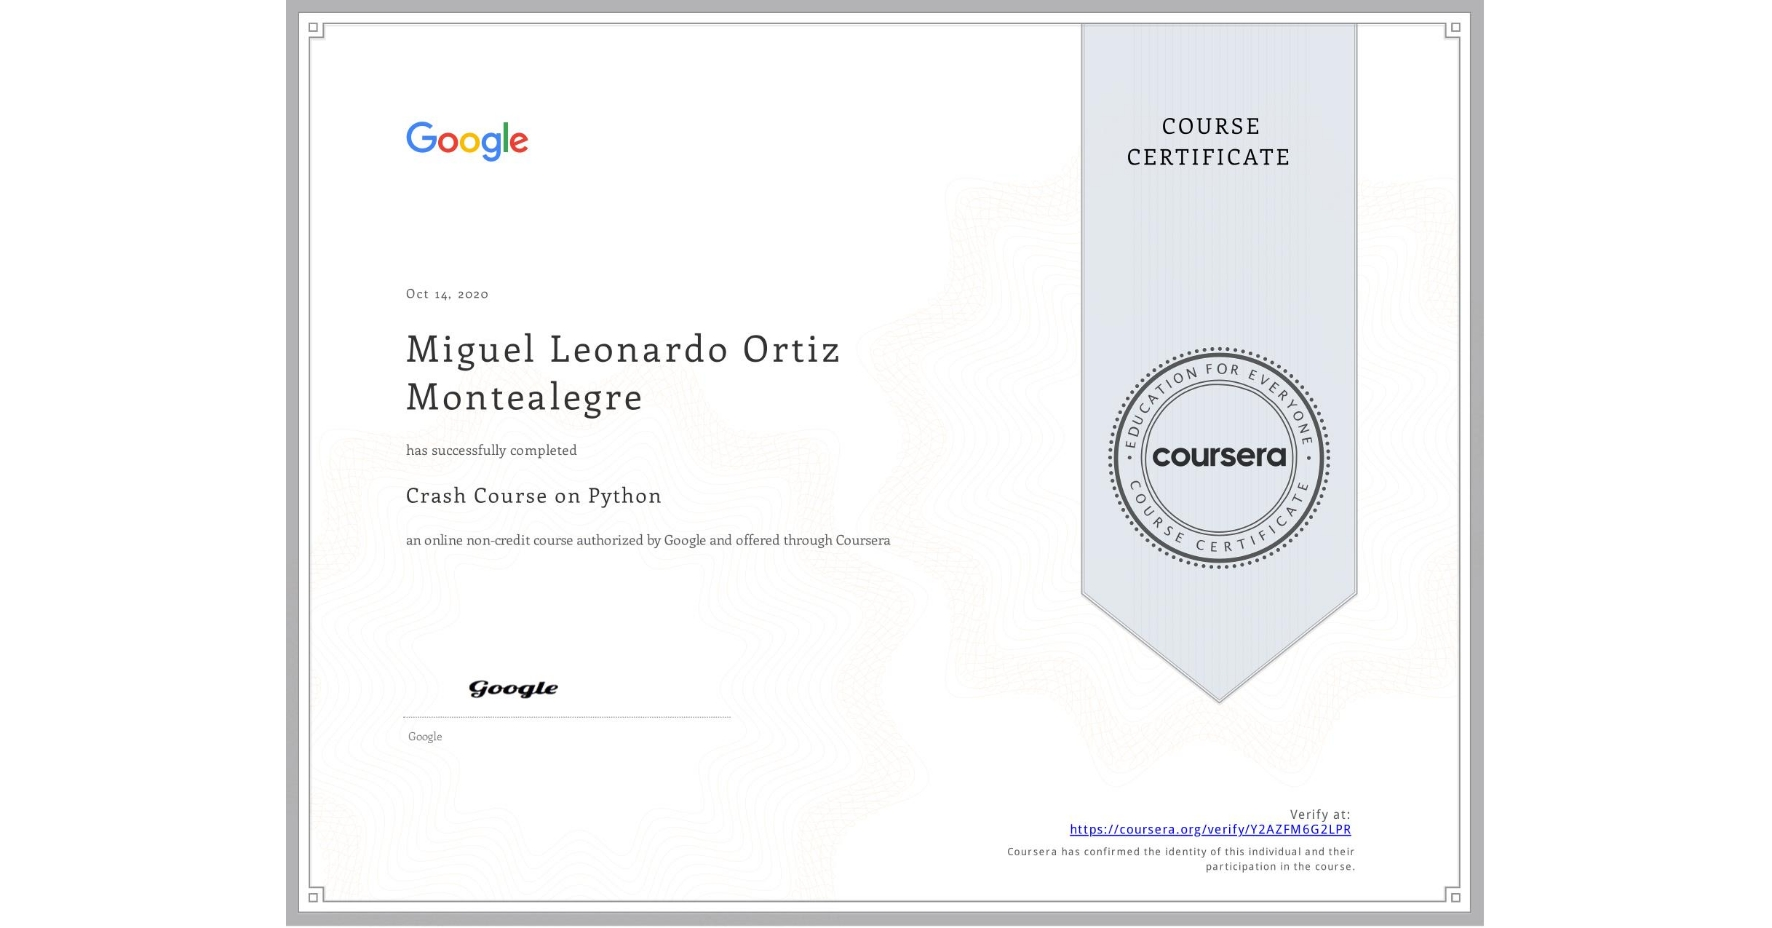 View certificate for Miguel Leonardo Ortiz Montealegre, Crash Course on Python, an online non-credit course authorized by Google and offered through Coursera